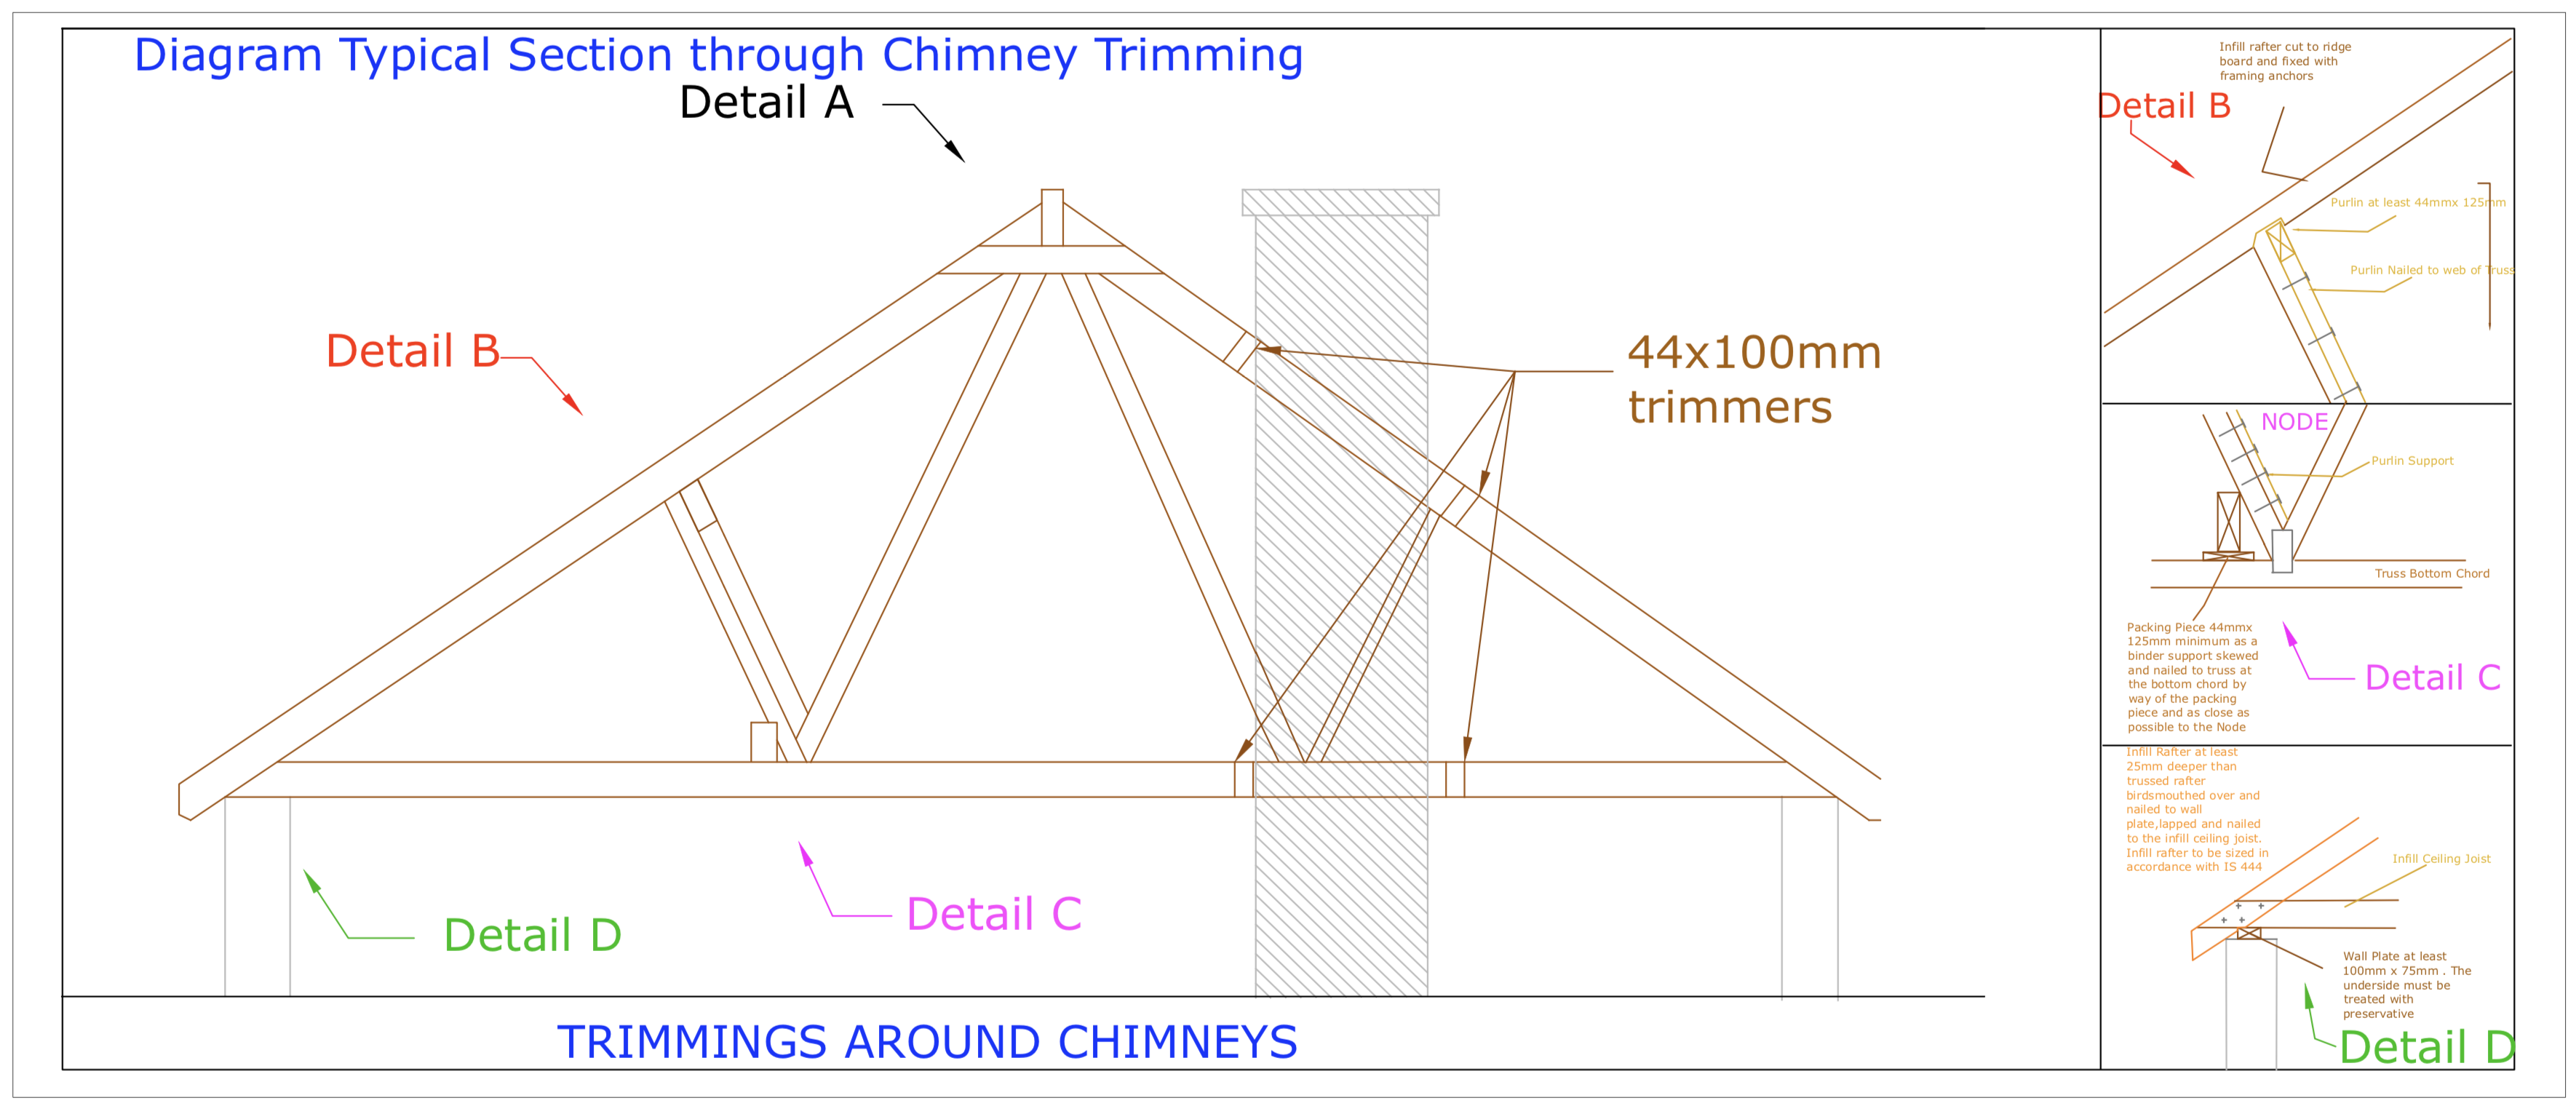 DIAGRAM D21 Section Details B C and D of Chimney trimming